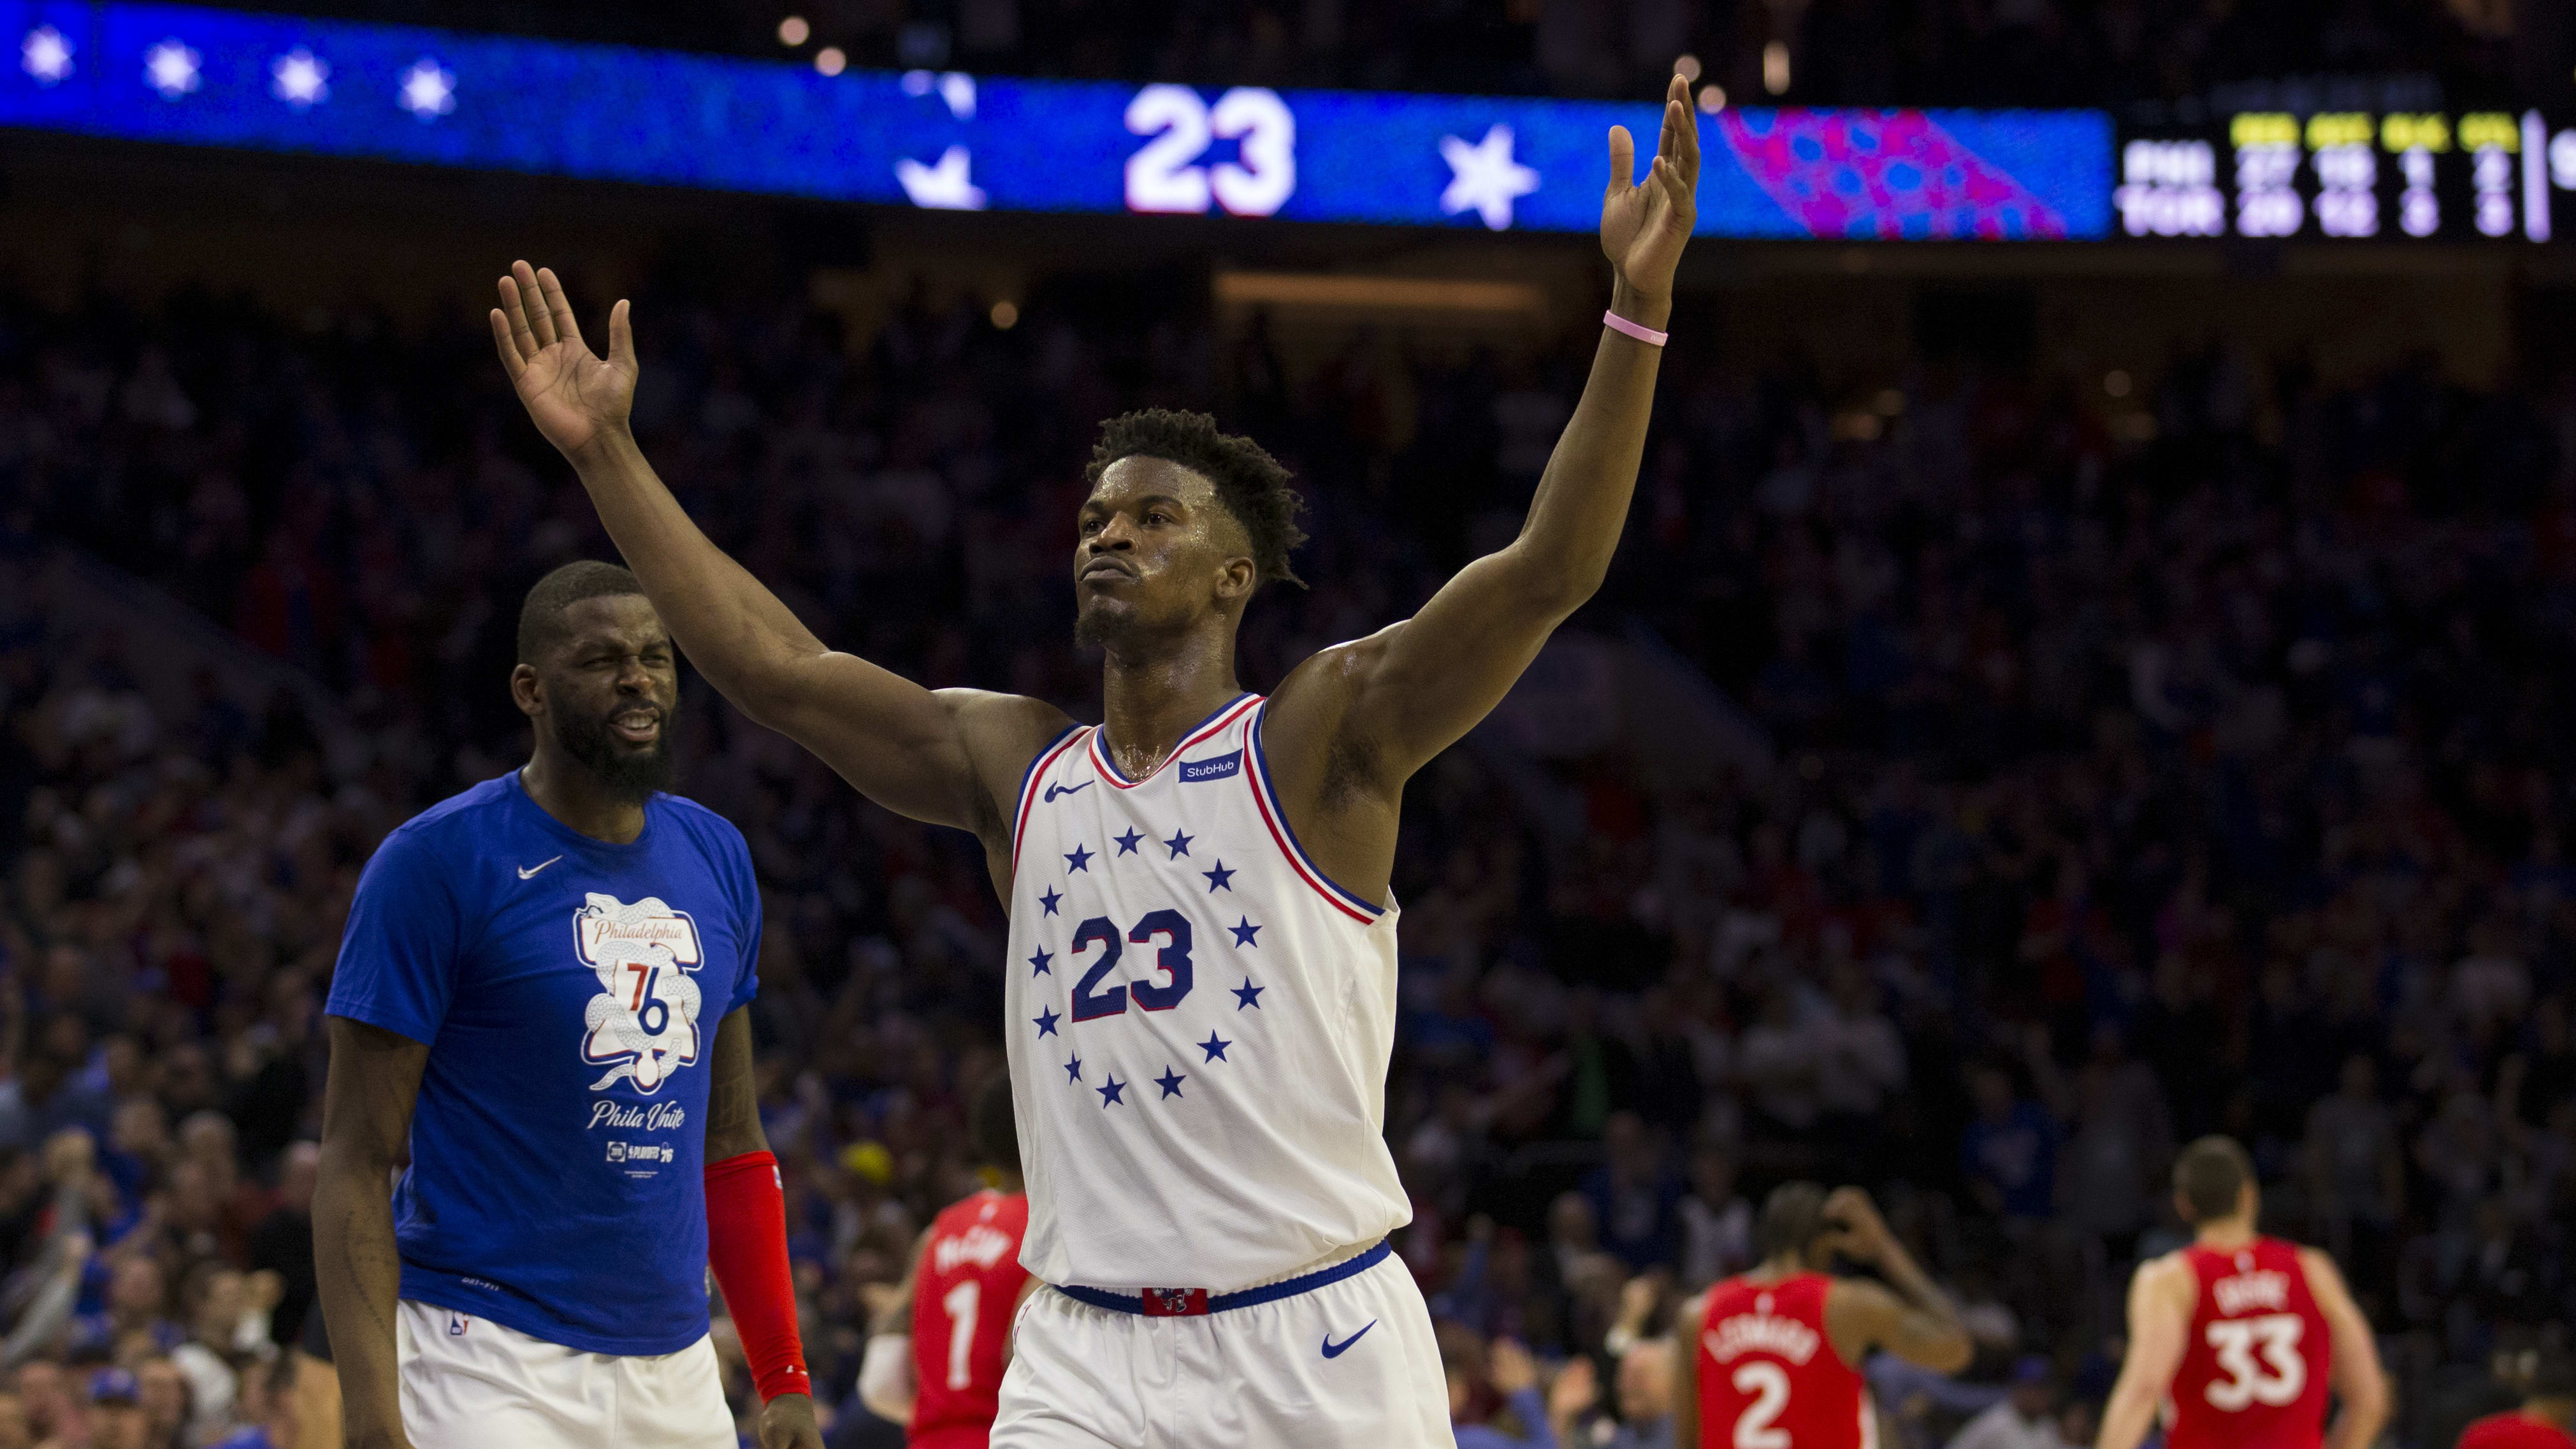 PHILADELPHIA, PA - MAY 09: Jimmy Butler #23 of the Philadelphia 76ers reacts at the end of the second quarter of Game Six of the Eastern Conference Semifinals against the Toronto Raptors at the Wells Fargo Center on May 9, 2019 in Philadelphia, Pennsylvania. NOTE TO USER: User expressly acknowledges and agrees that, by downloading and or using this photograph, User is consenting to the terms and conditions of the Getty Images License Agreement. (Photo by Mitchell Leff/Getty Images)